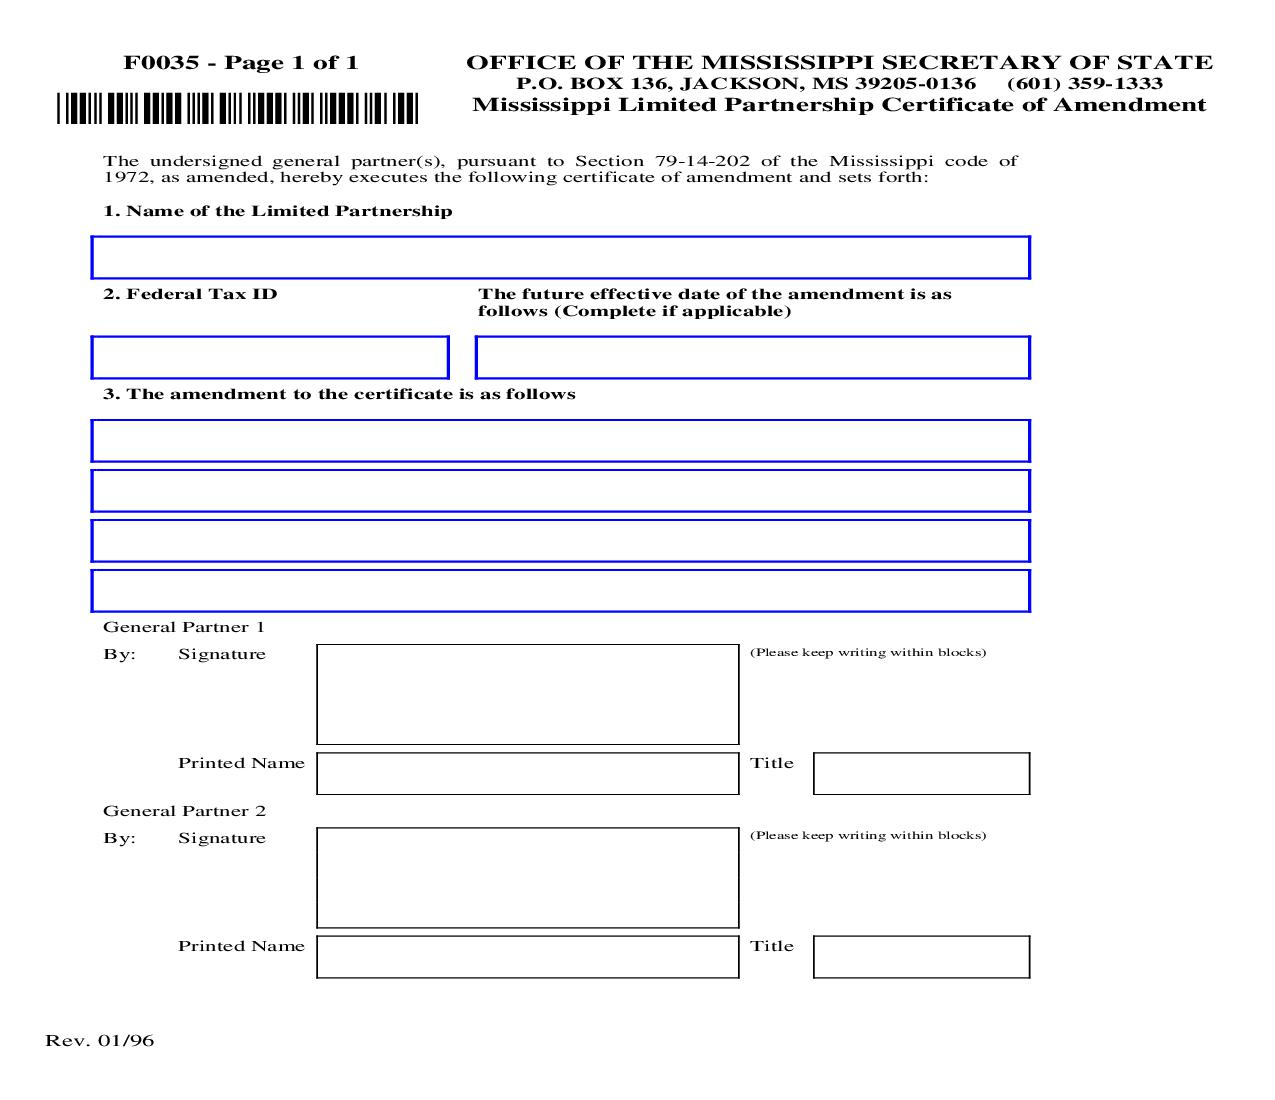 Mississippi Limited Partnership Certificate Of Amendment {F0035} | Pdf Fpdf Doc Docx | Mississippi